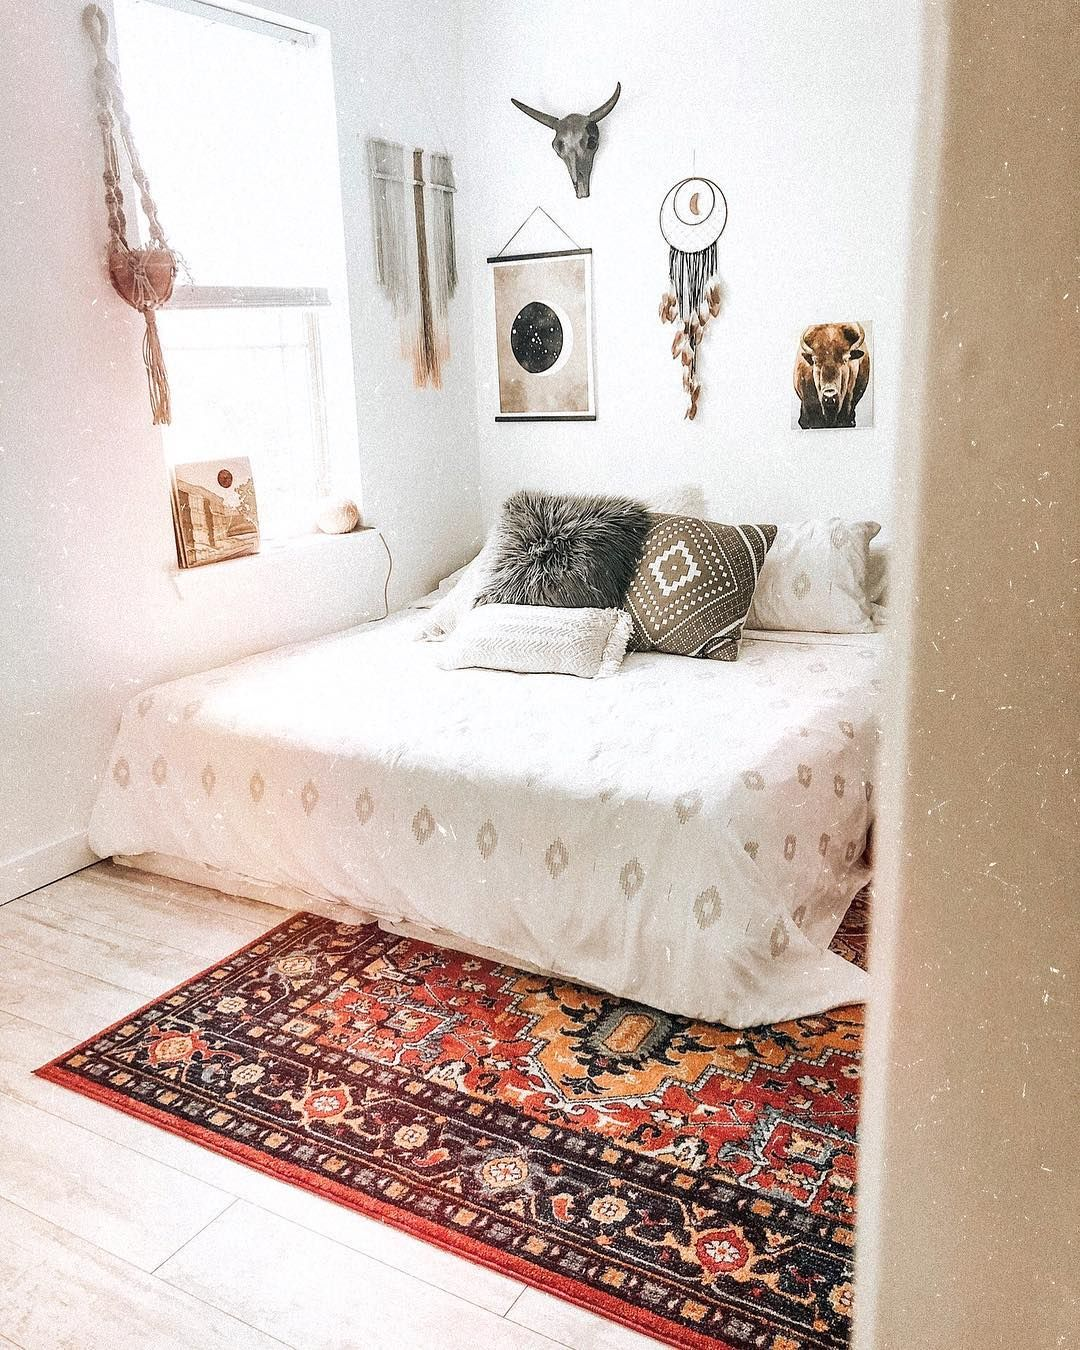 Pin by Maria on Mi Casita in Pinterest Bedroom Home and Room